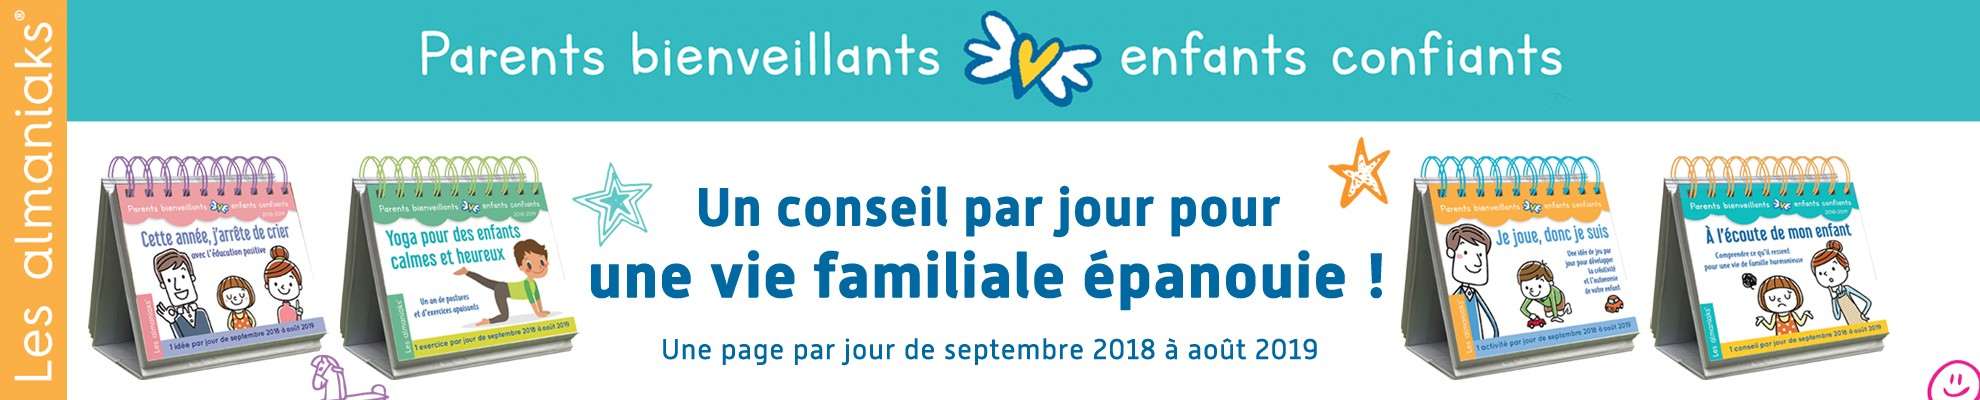 Almaniak Parents bienveillants - Enfants confiants